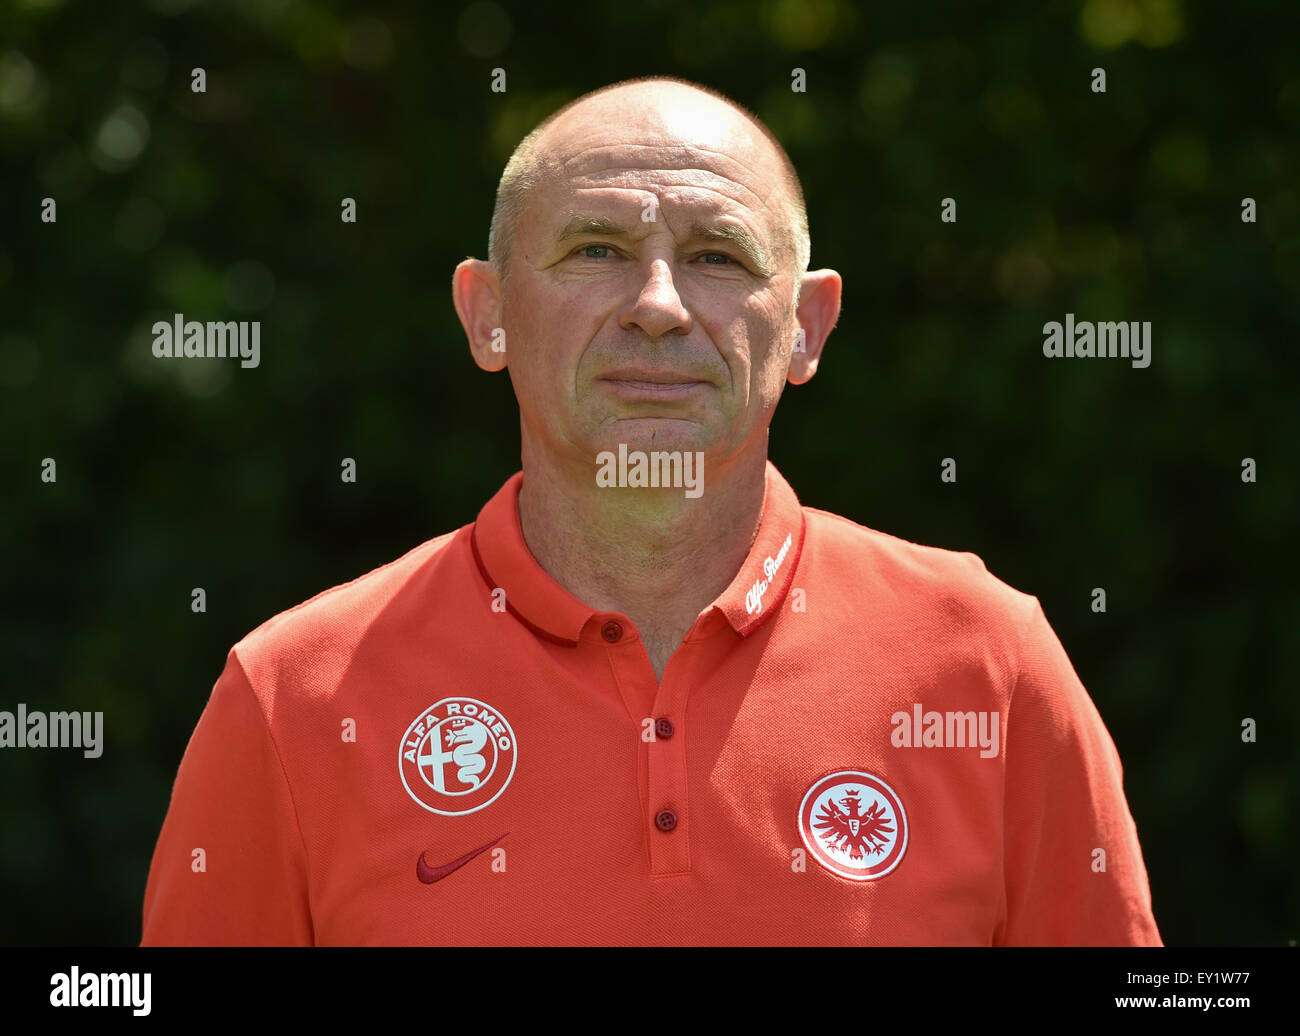 German Soccer Bundesliga 2015/16 - Photocall Eintracht Frankfurt on 15 July 2015 in Frankfurt, Germany: Kitman Igor - Stock Image